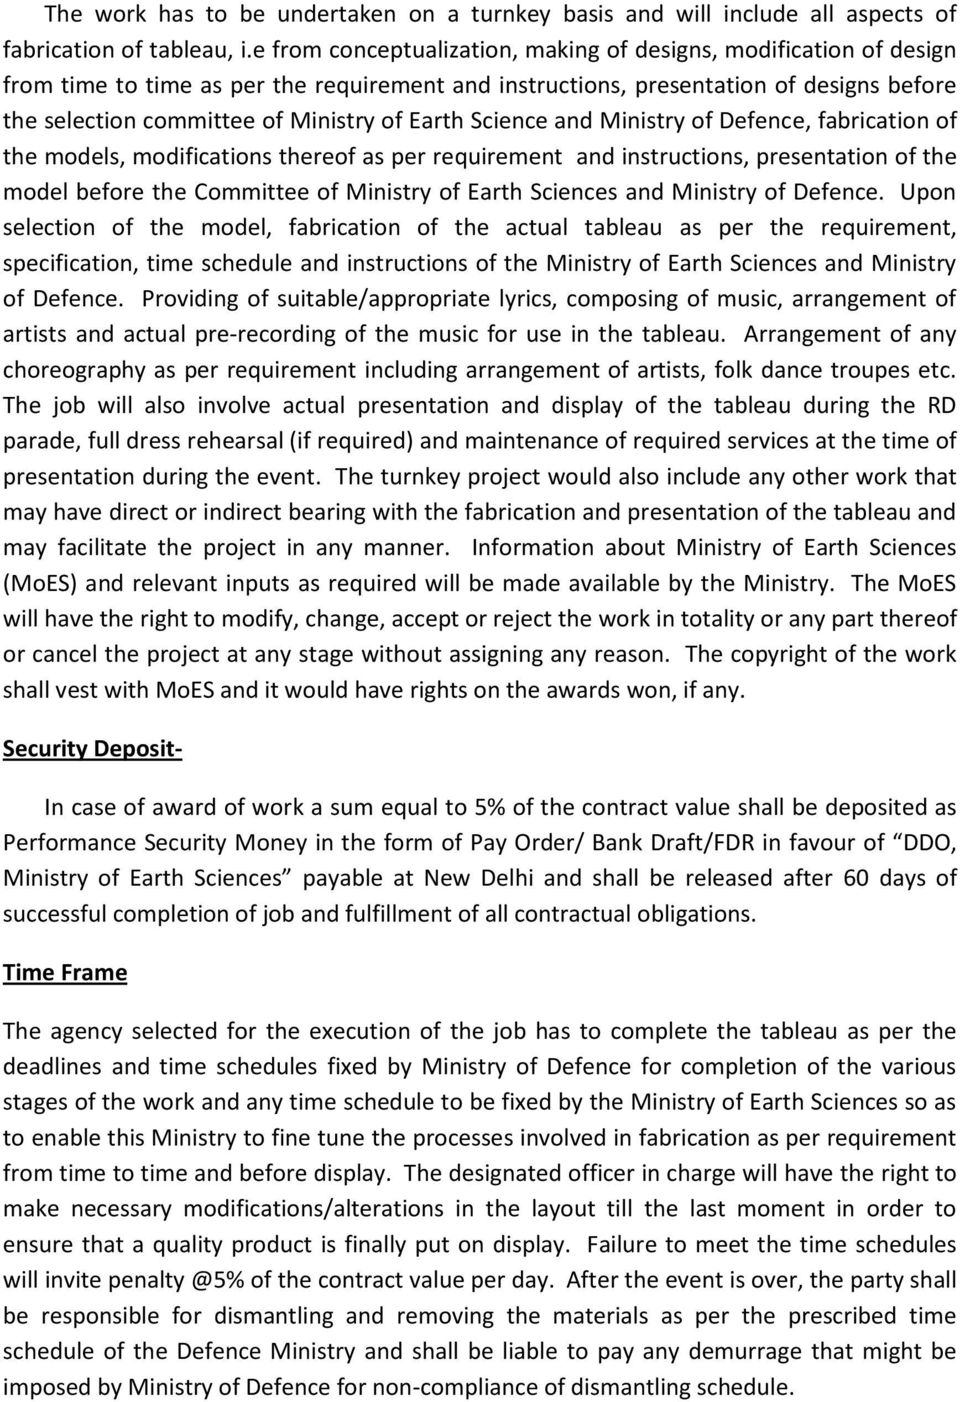 Earth Science and Ministry of Defence, fabrication of the models, modifications thereof as per requirement and instructions, presentation of the model before the Committee of Ministry of Earth